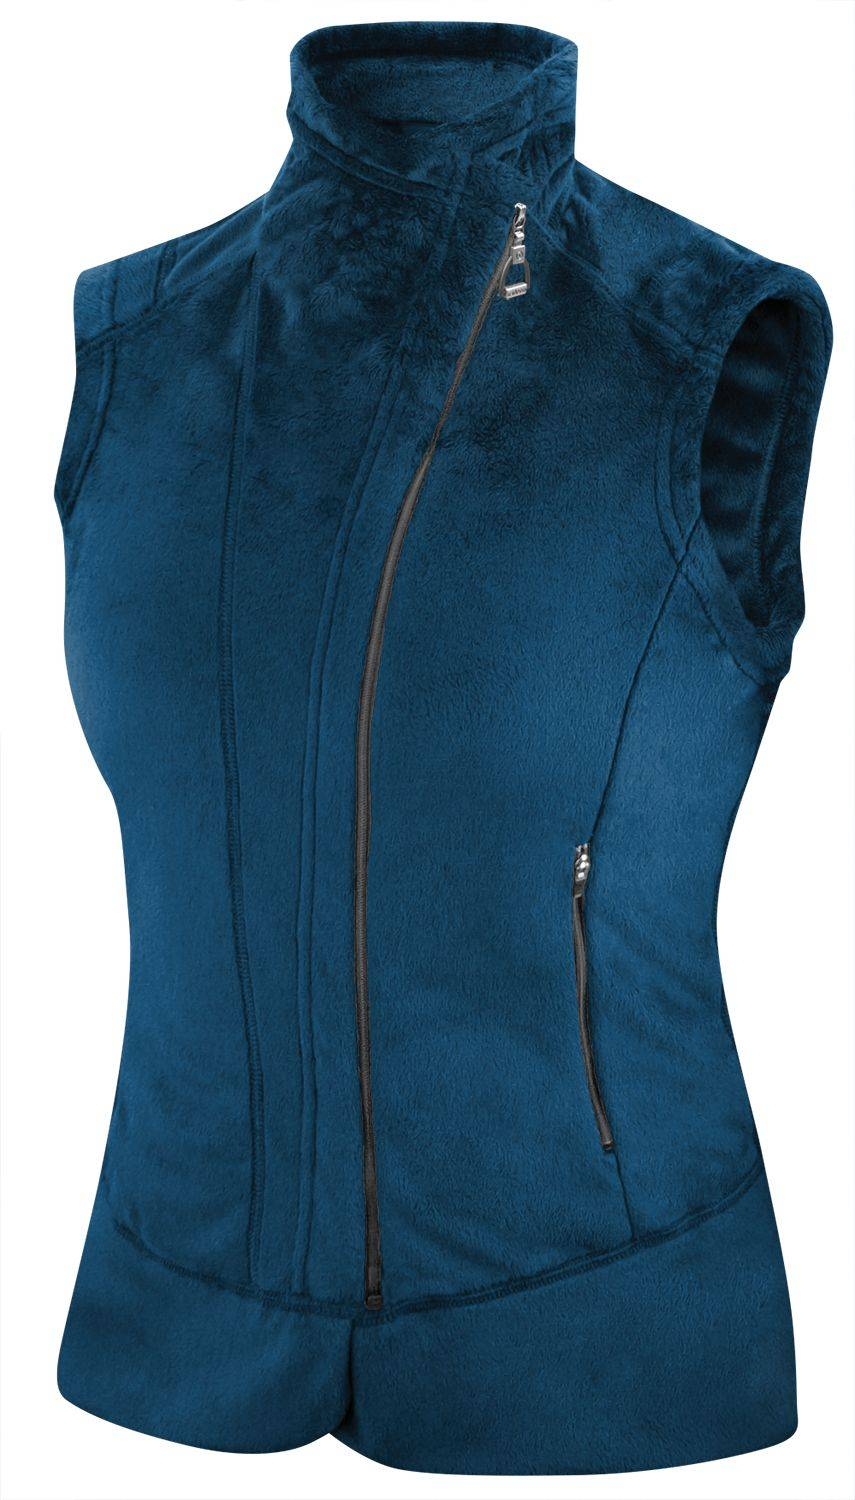 Irideon Icelandic Fleece Vest - Kids